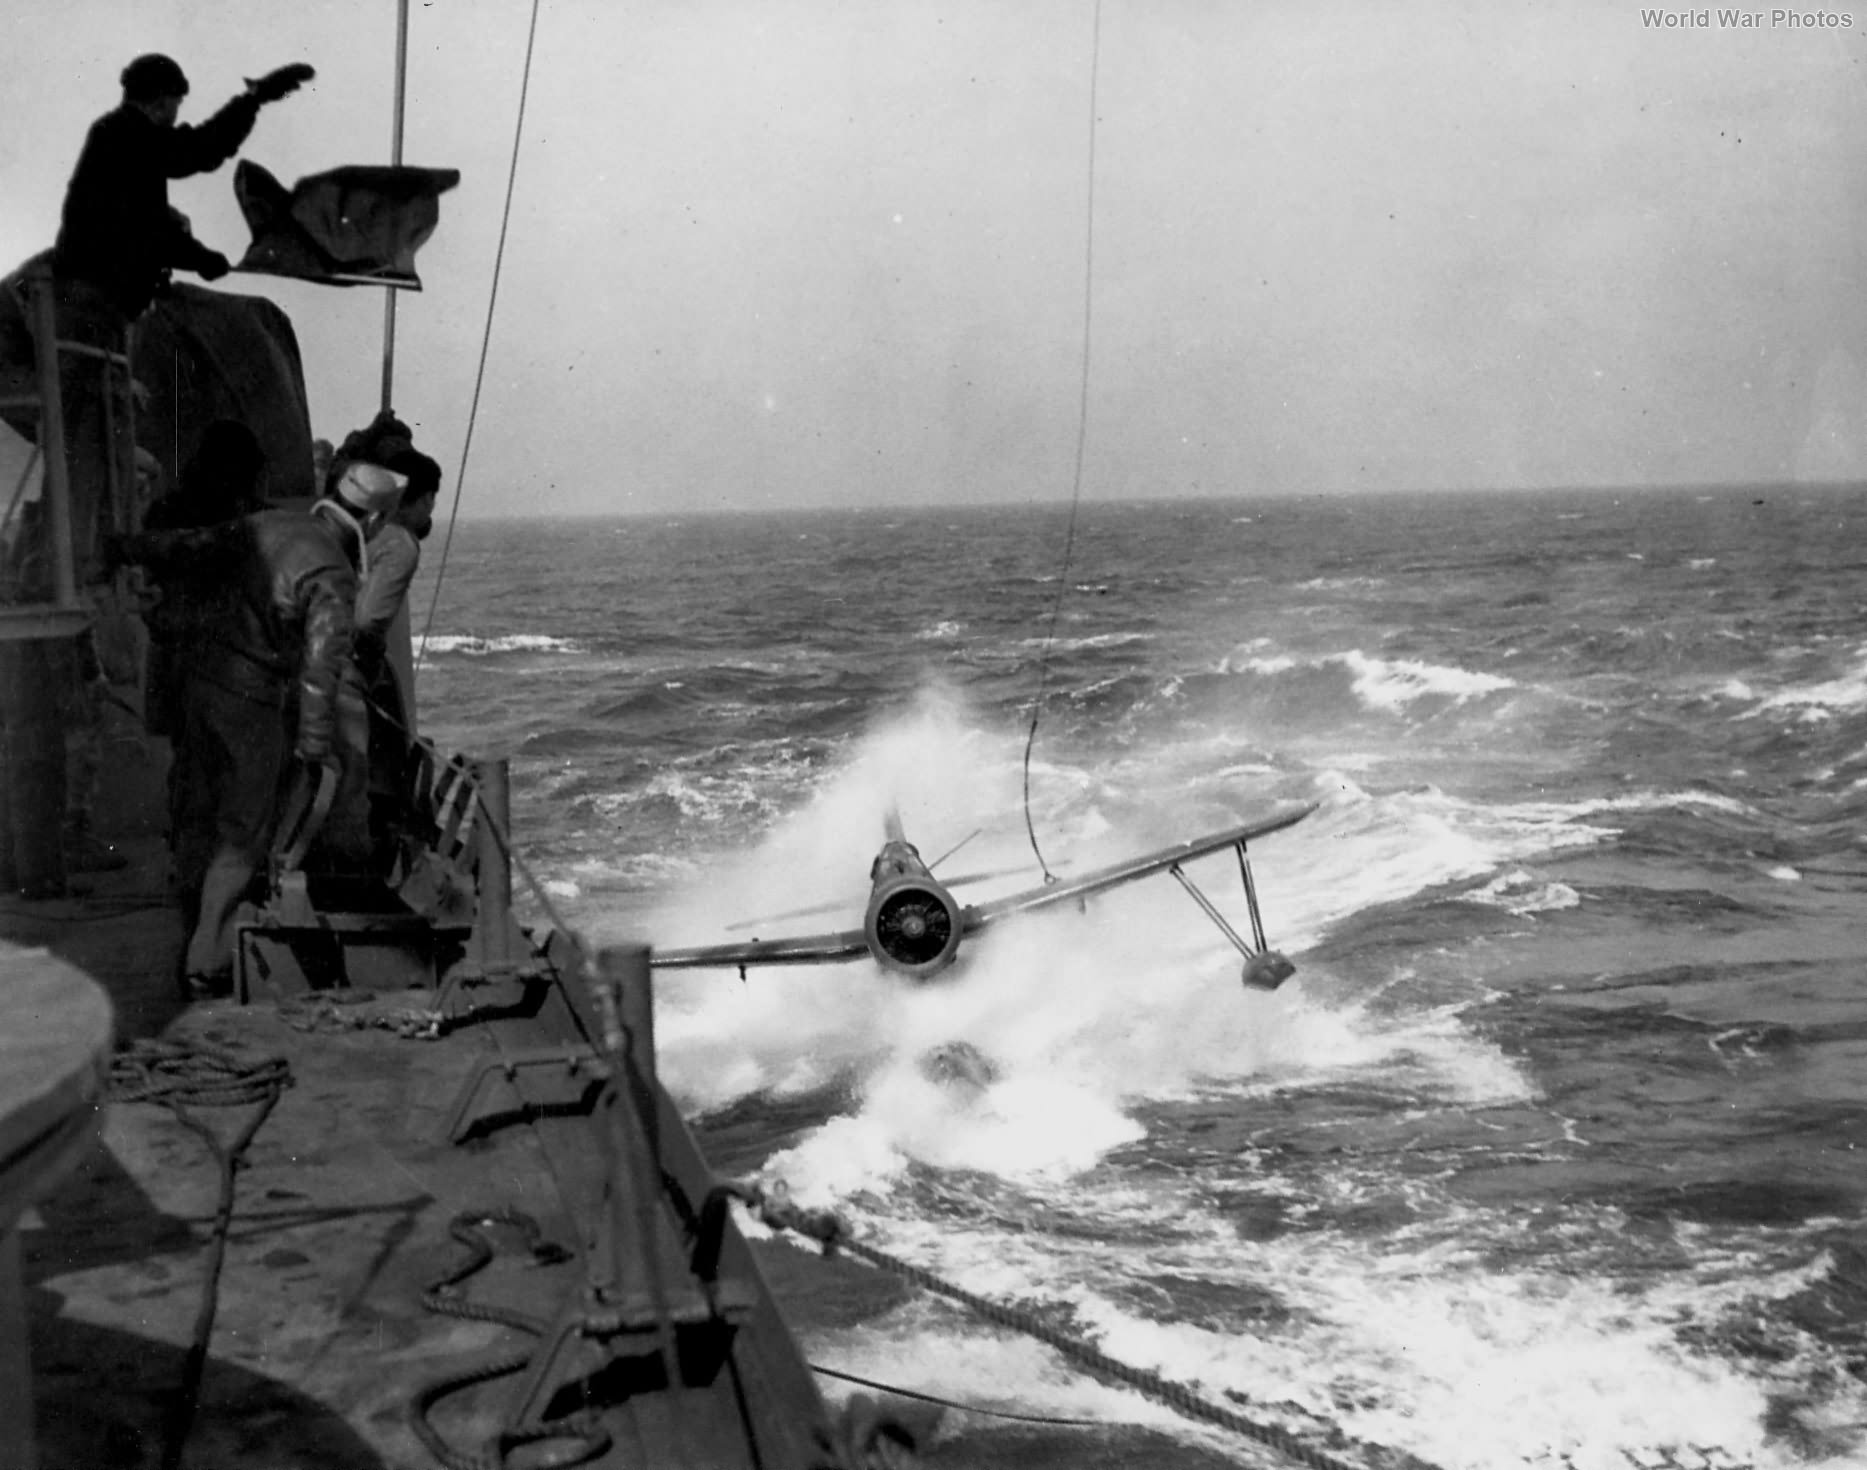 OS2U taxis during recovery operations by the USS South Dakota, 1943